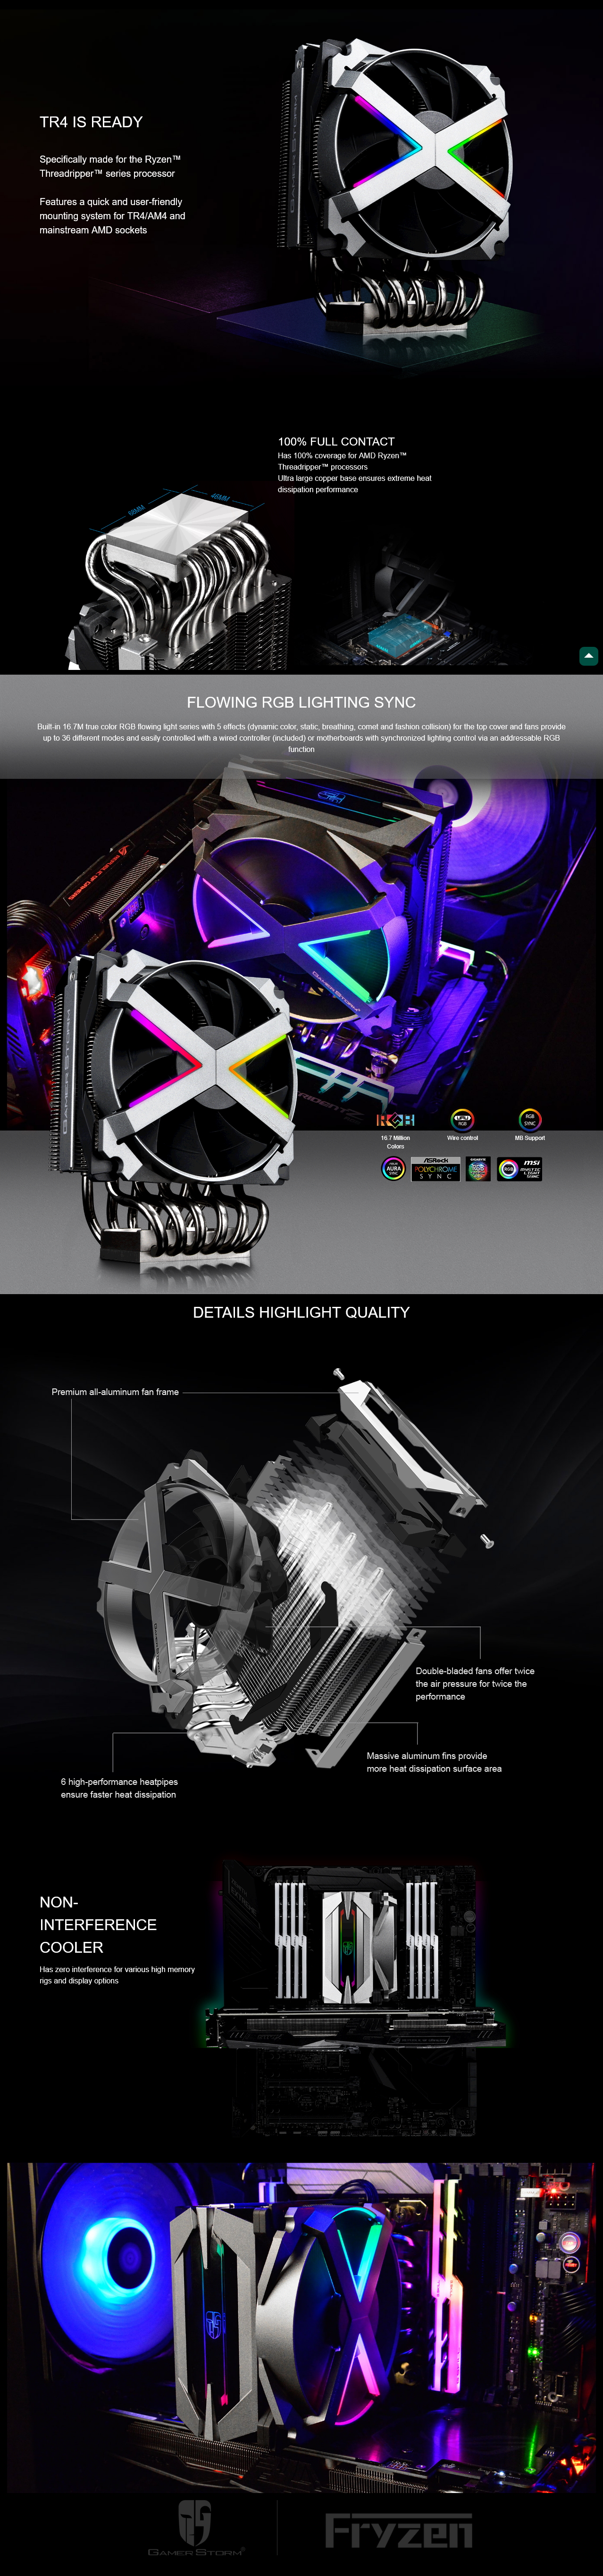 A large marketing image providing additional information about the product Deepcool Fryzen CPU Cooler - Additional alt info not provided